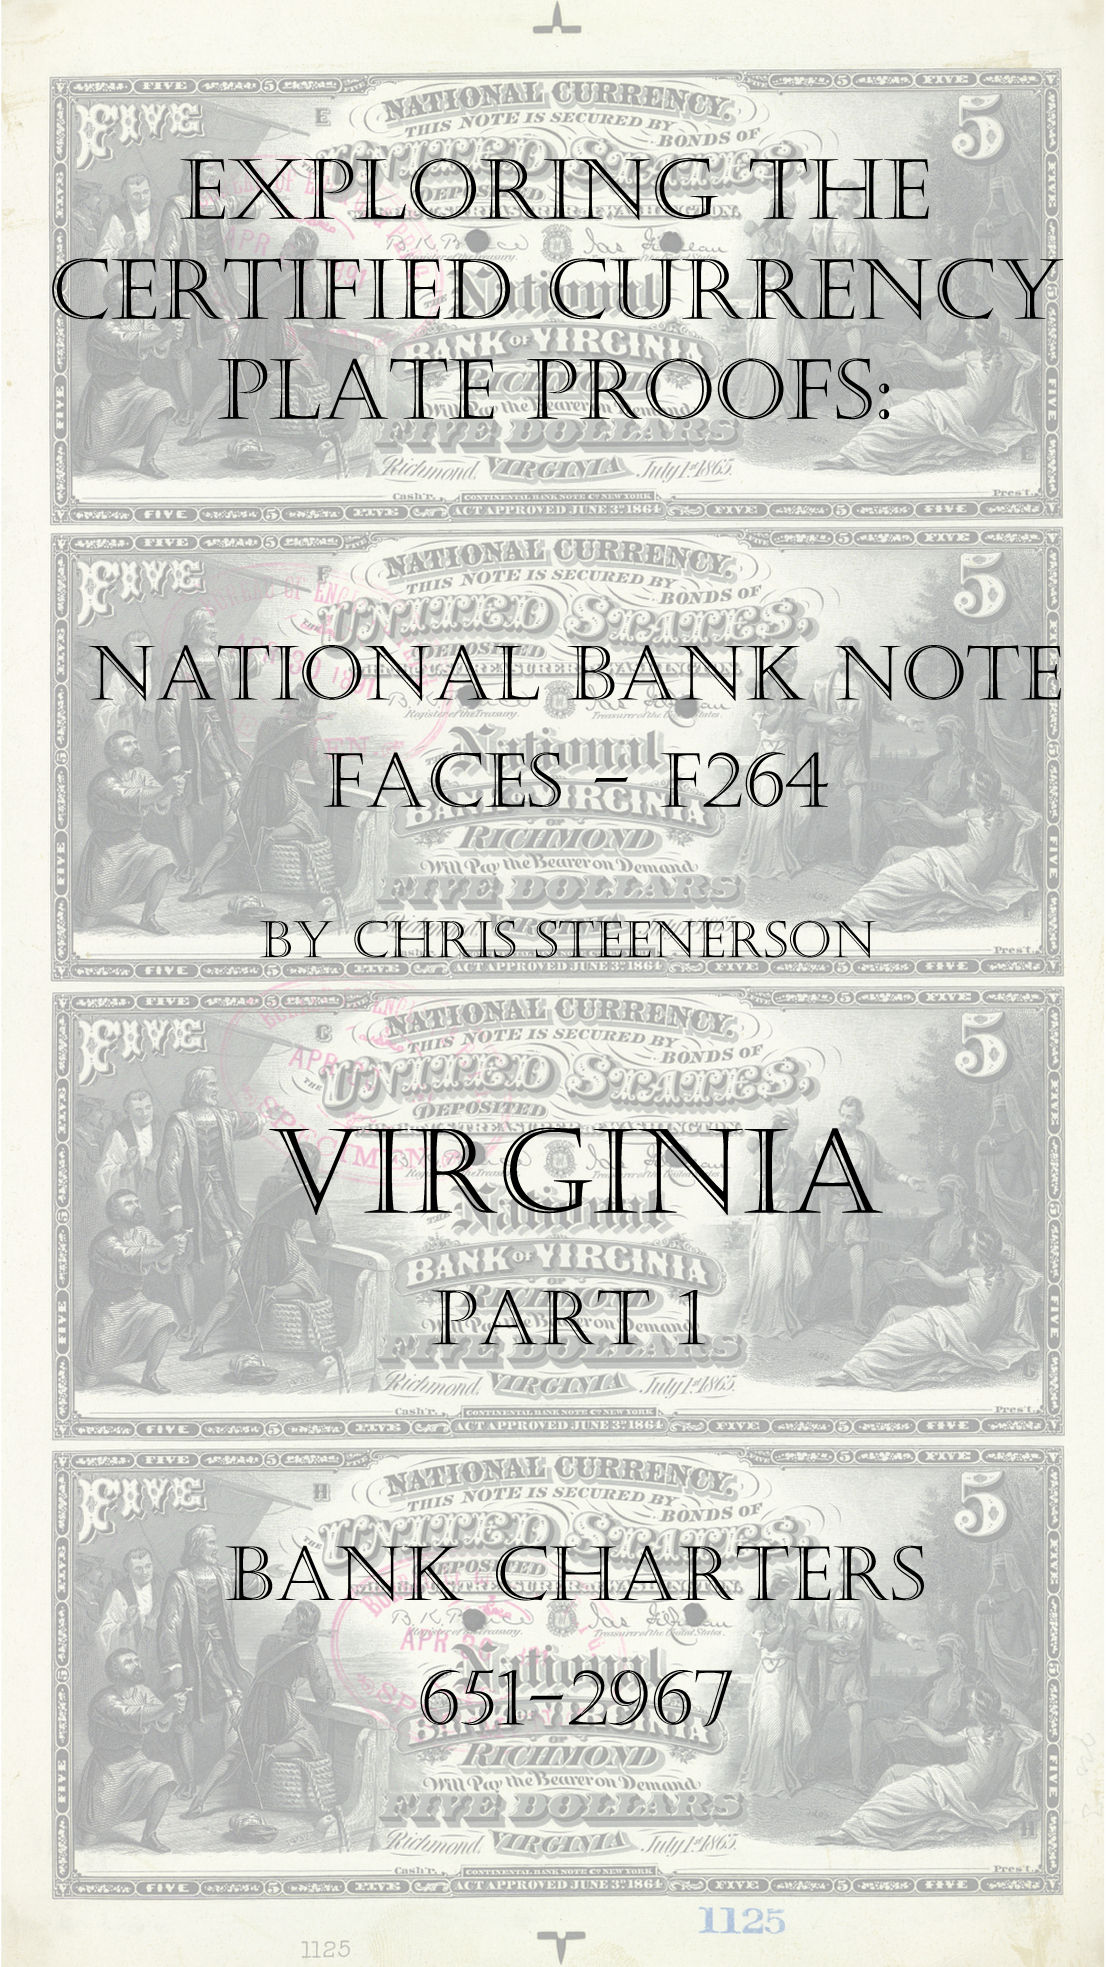 Virginia National Bank Note Currency Proofs